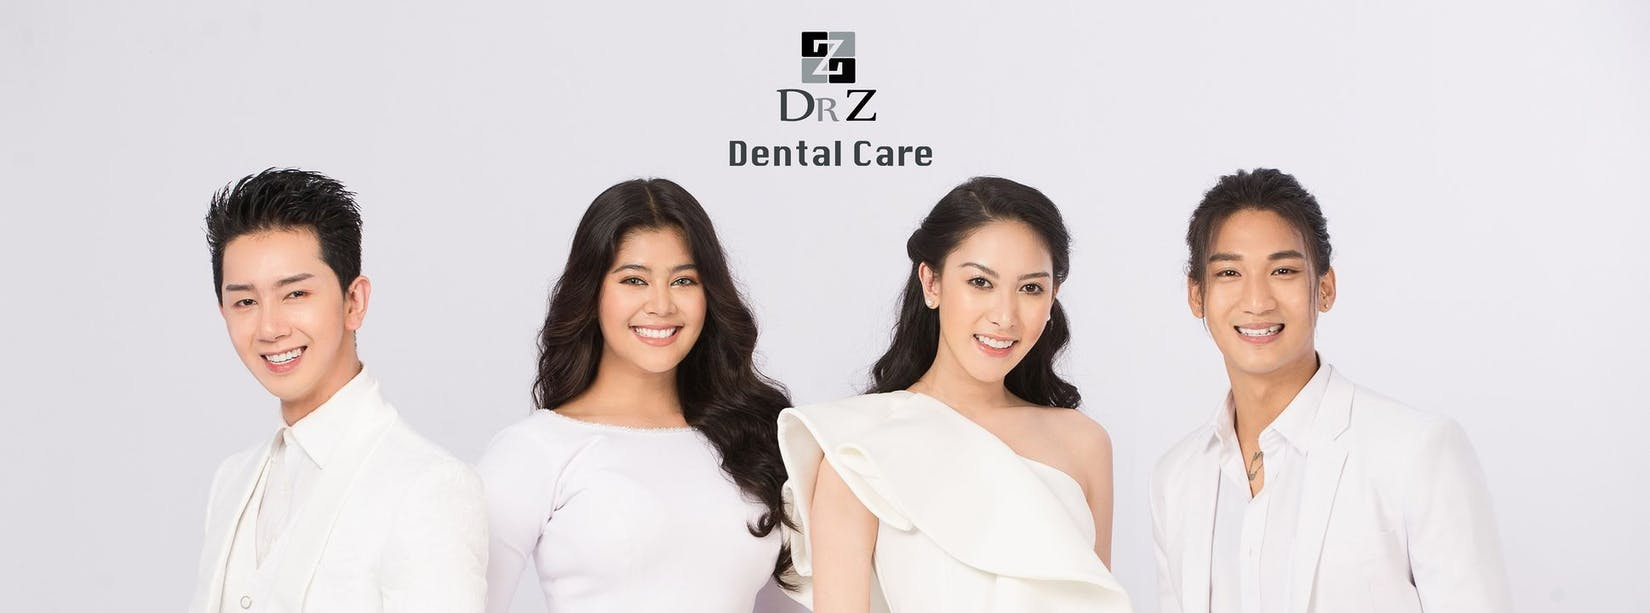 DRZ Aesthetic and Dental Care | Medical